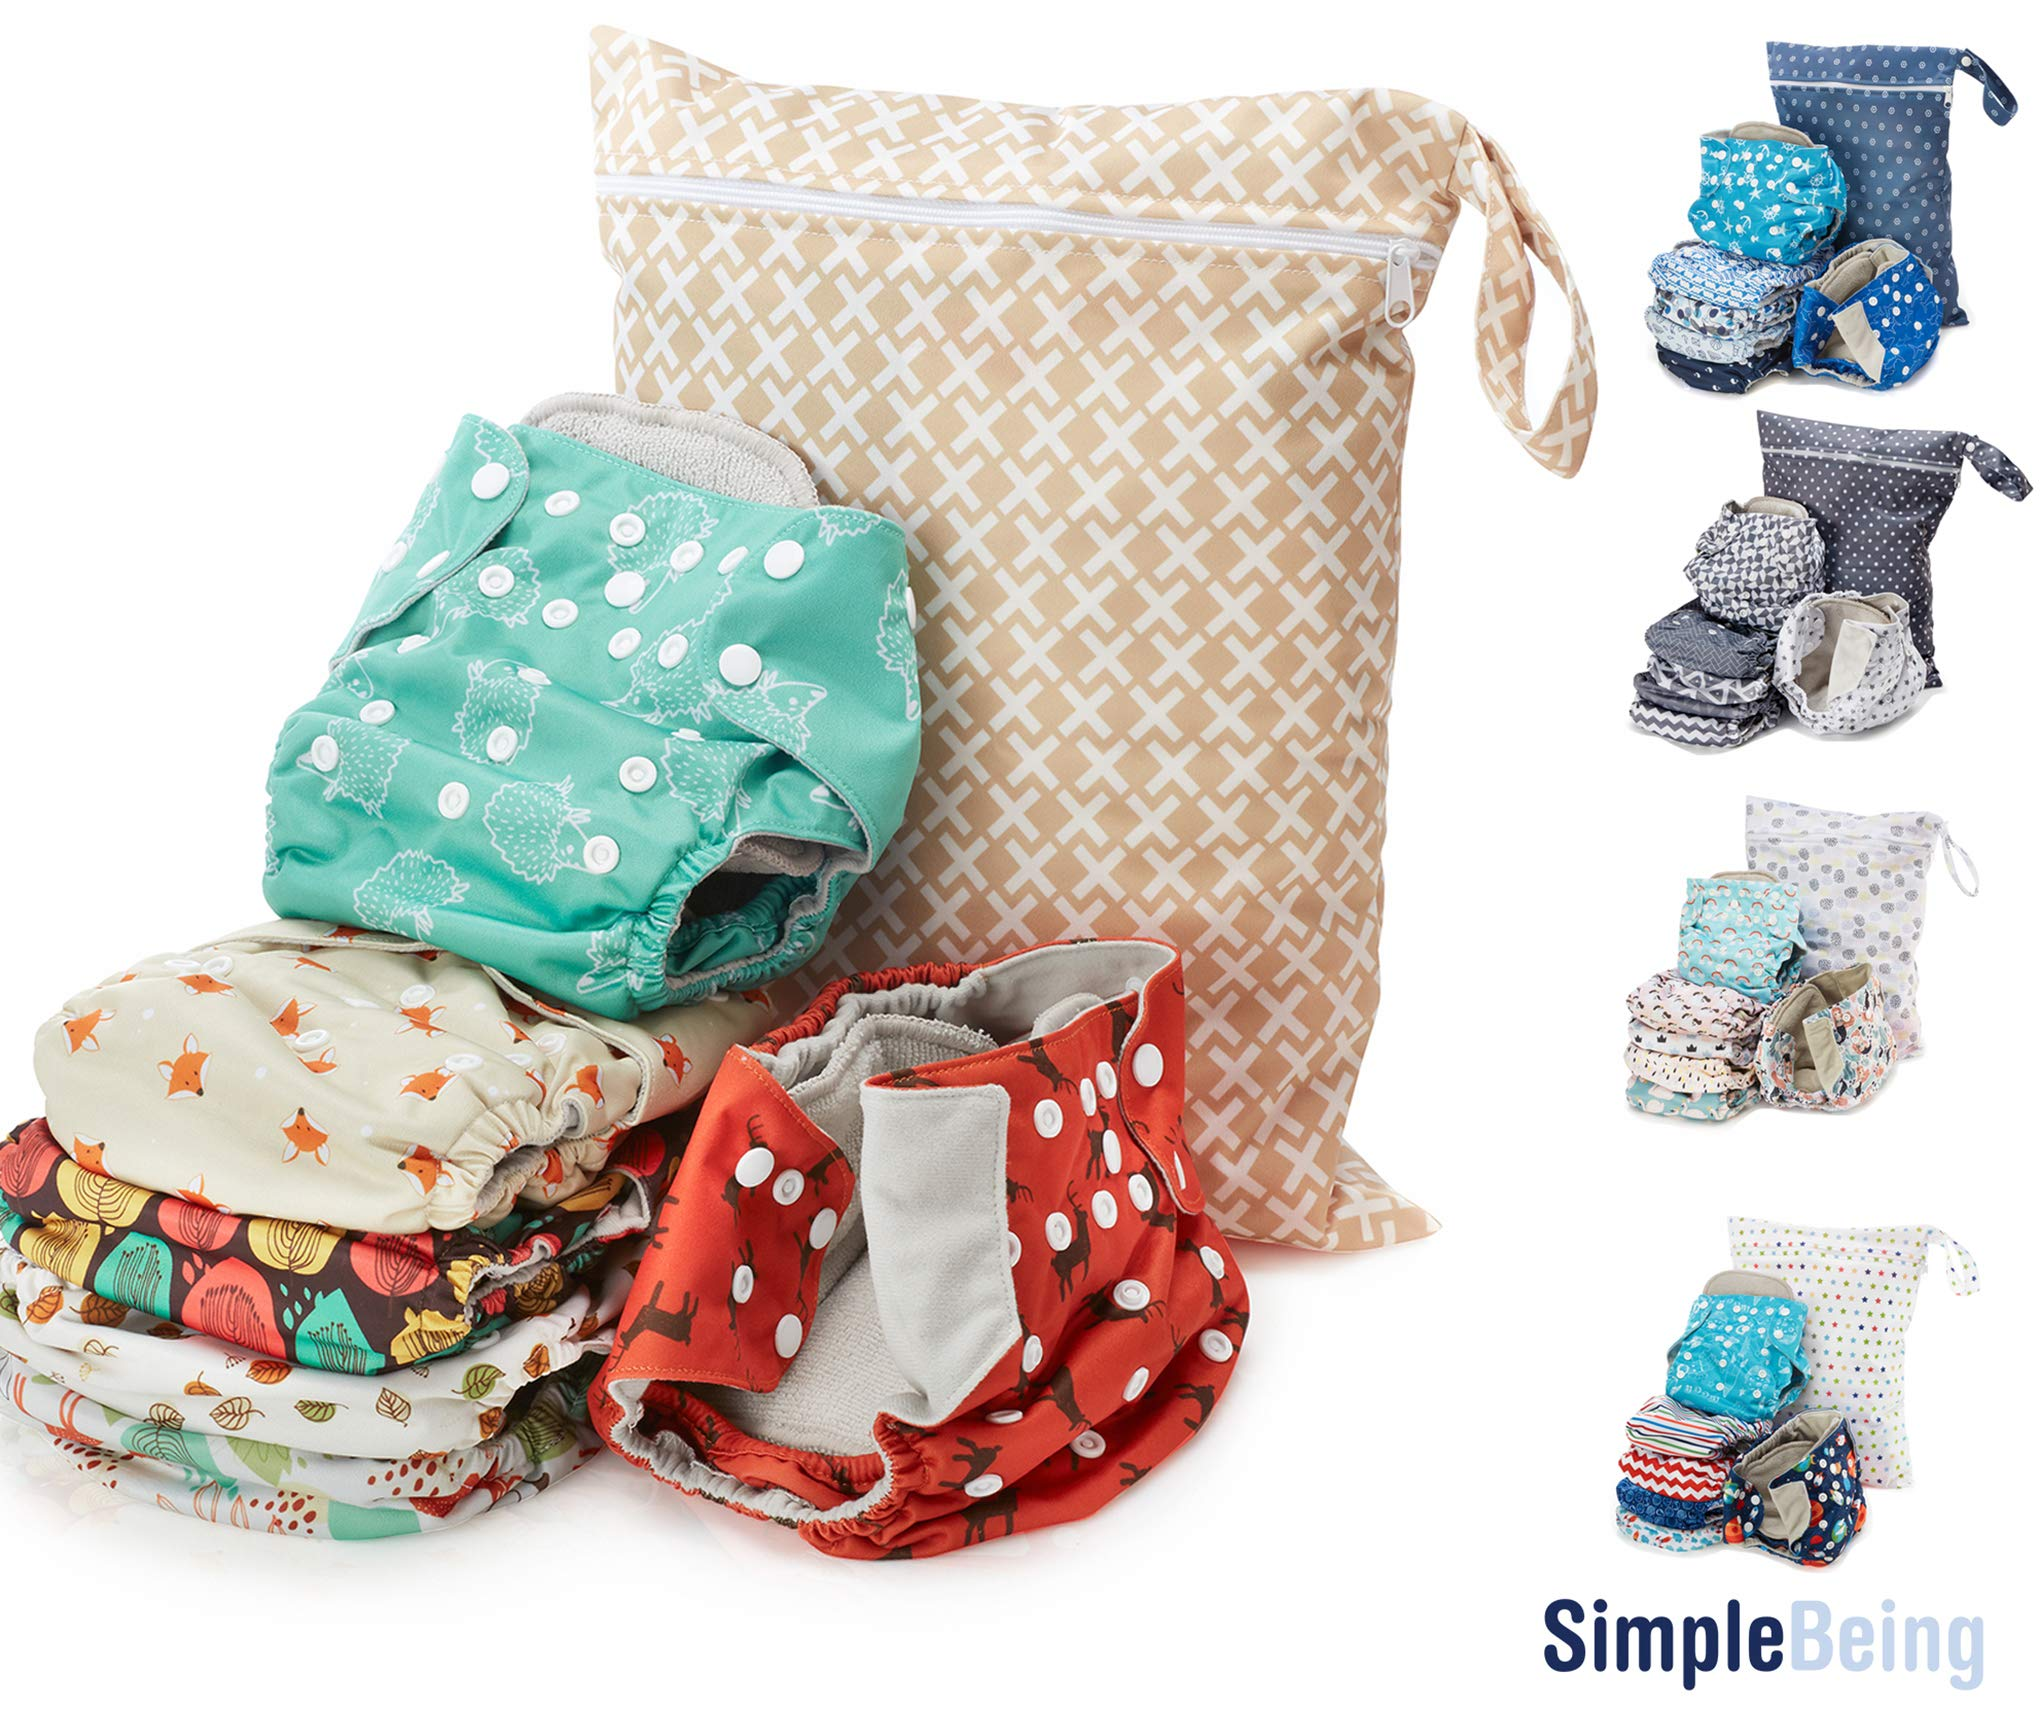 Simple Being Reusable Cloth Diapers, Double Gusset, One Size Adjustable, Washable Soft Absorbent, Waterproof Cover, Eco-Friendly Unisex Baby Girl Boy, with six 4-Layers Microfiber Inserts (Forest)